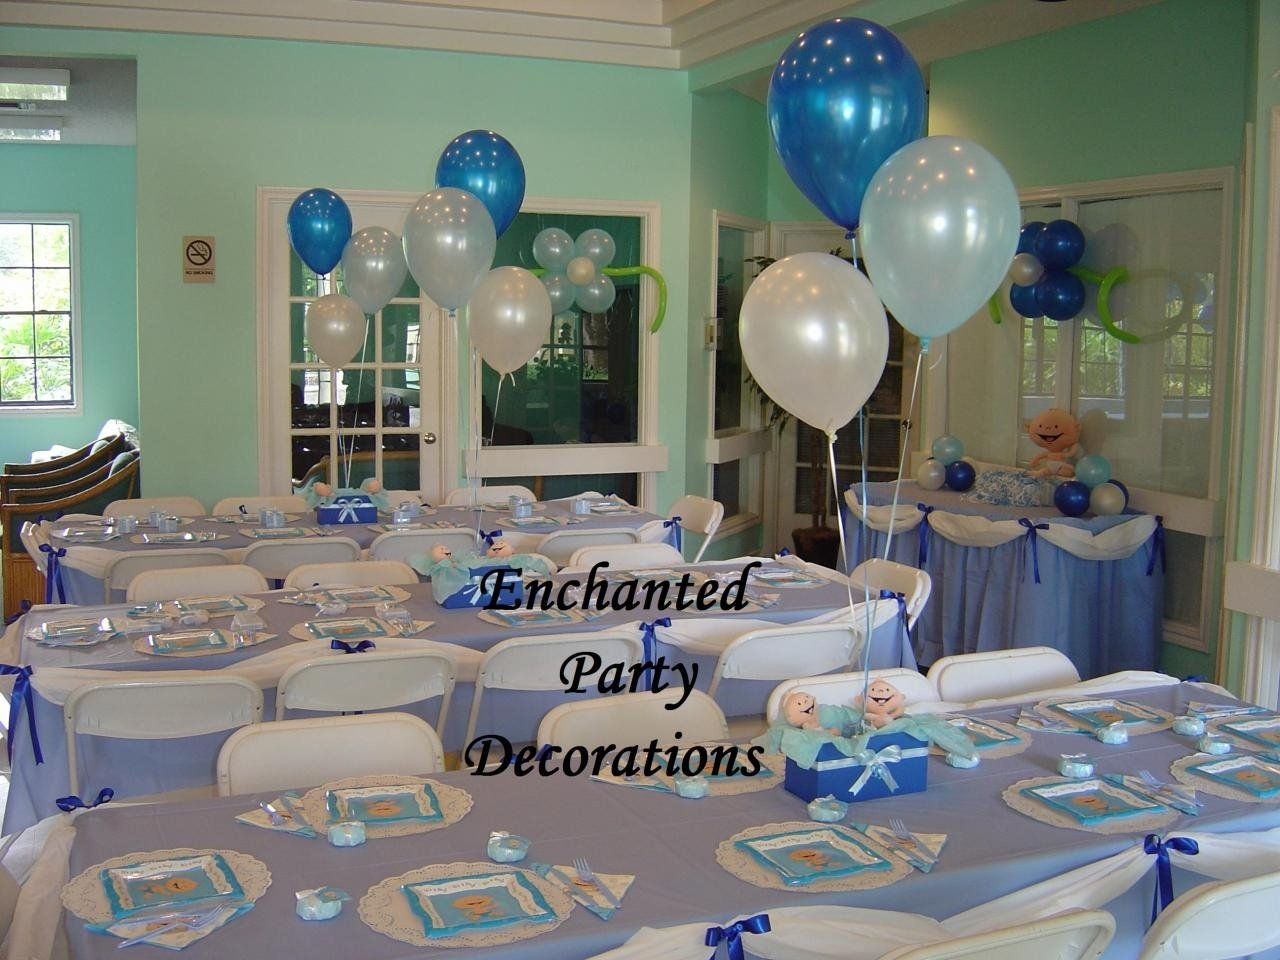 10 Attractive Baby Shower Centerpieces Ideas For Boys baby shower ideas table decorations homes alternative 58195 2 2020